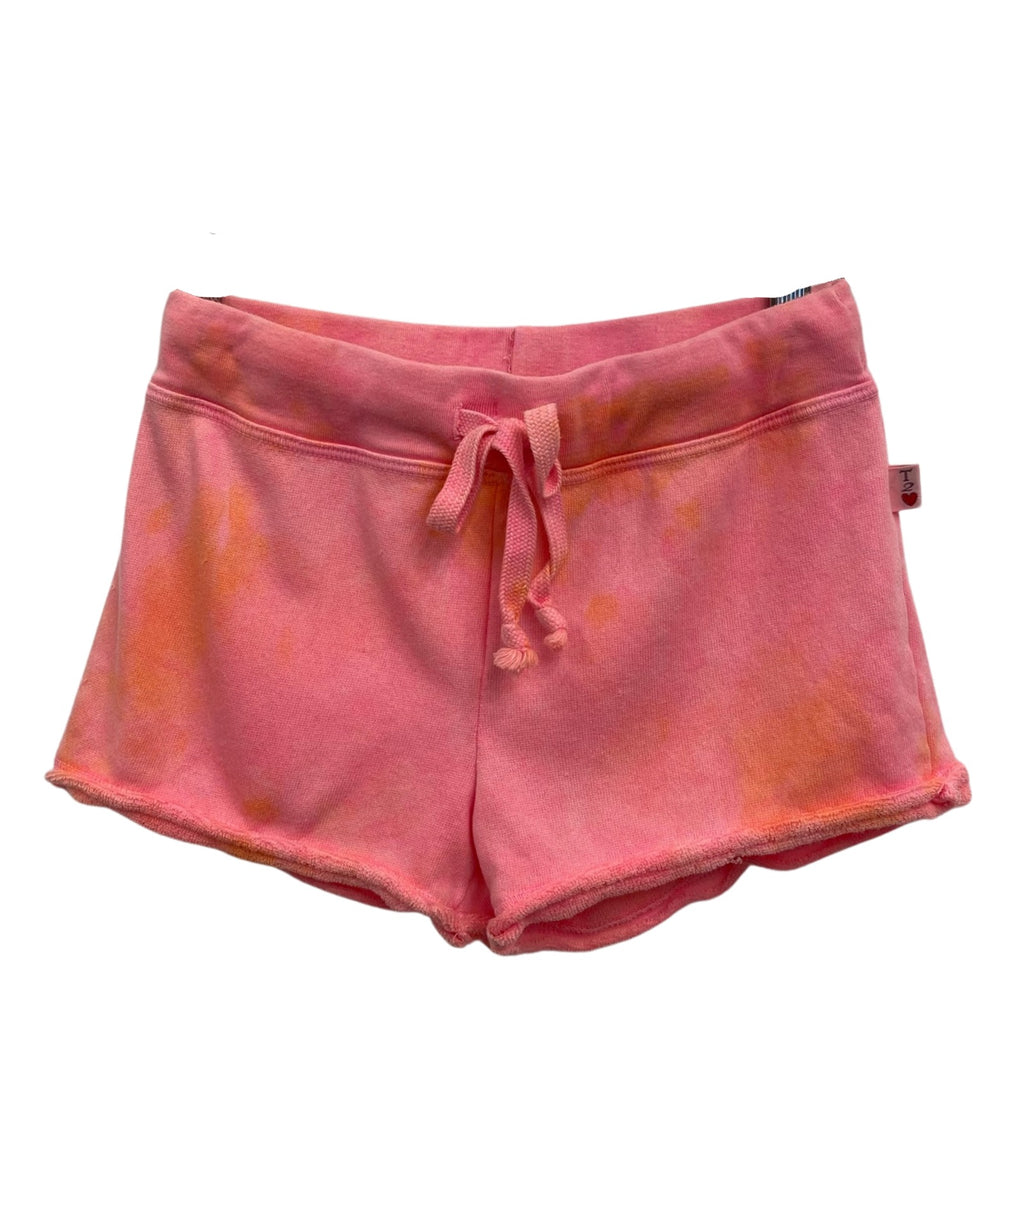 T2 Love Girls Neon Tie Dye Shorts With Pocket